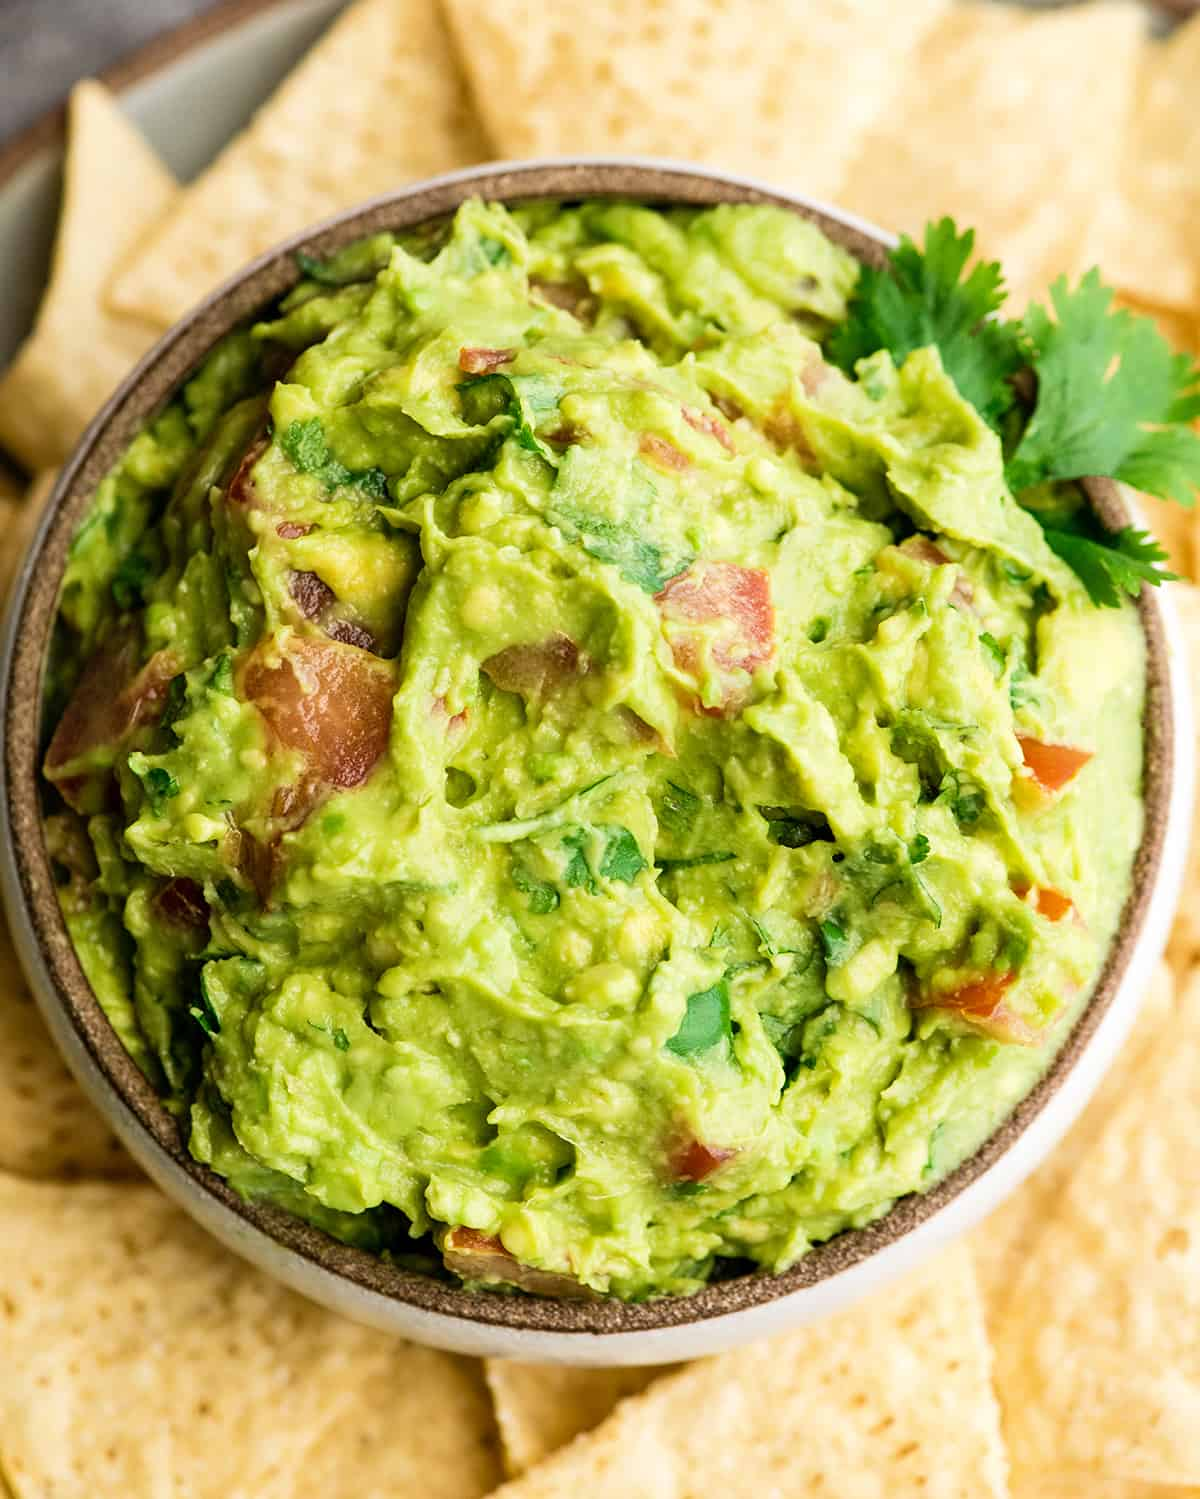 Overhead view of easy guacamole recipe in a bowl surrounded by chips